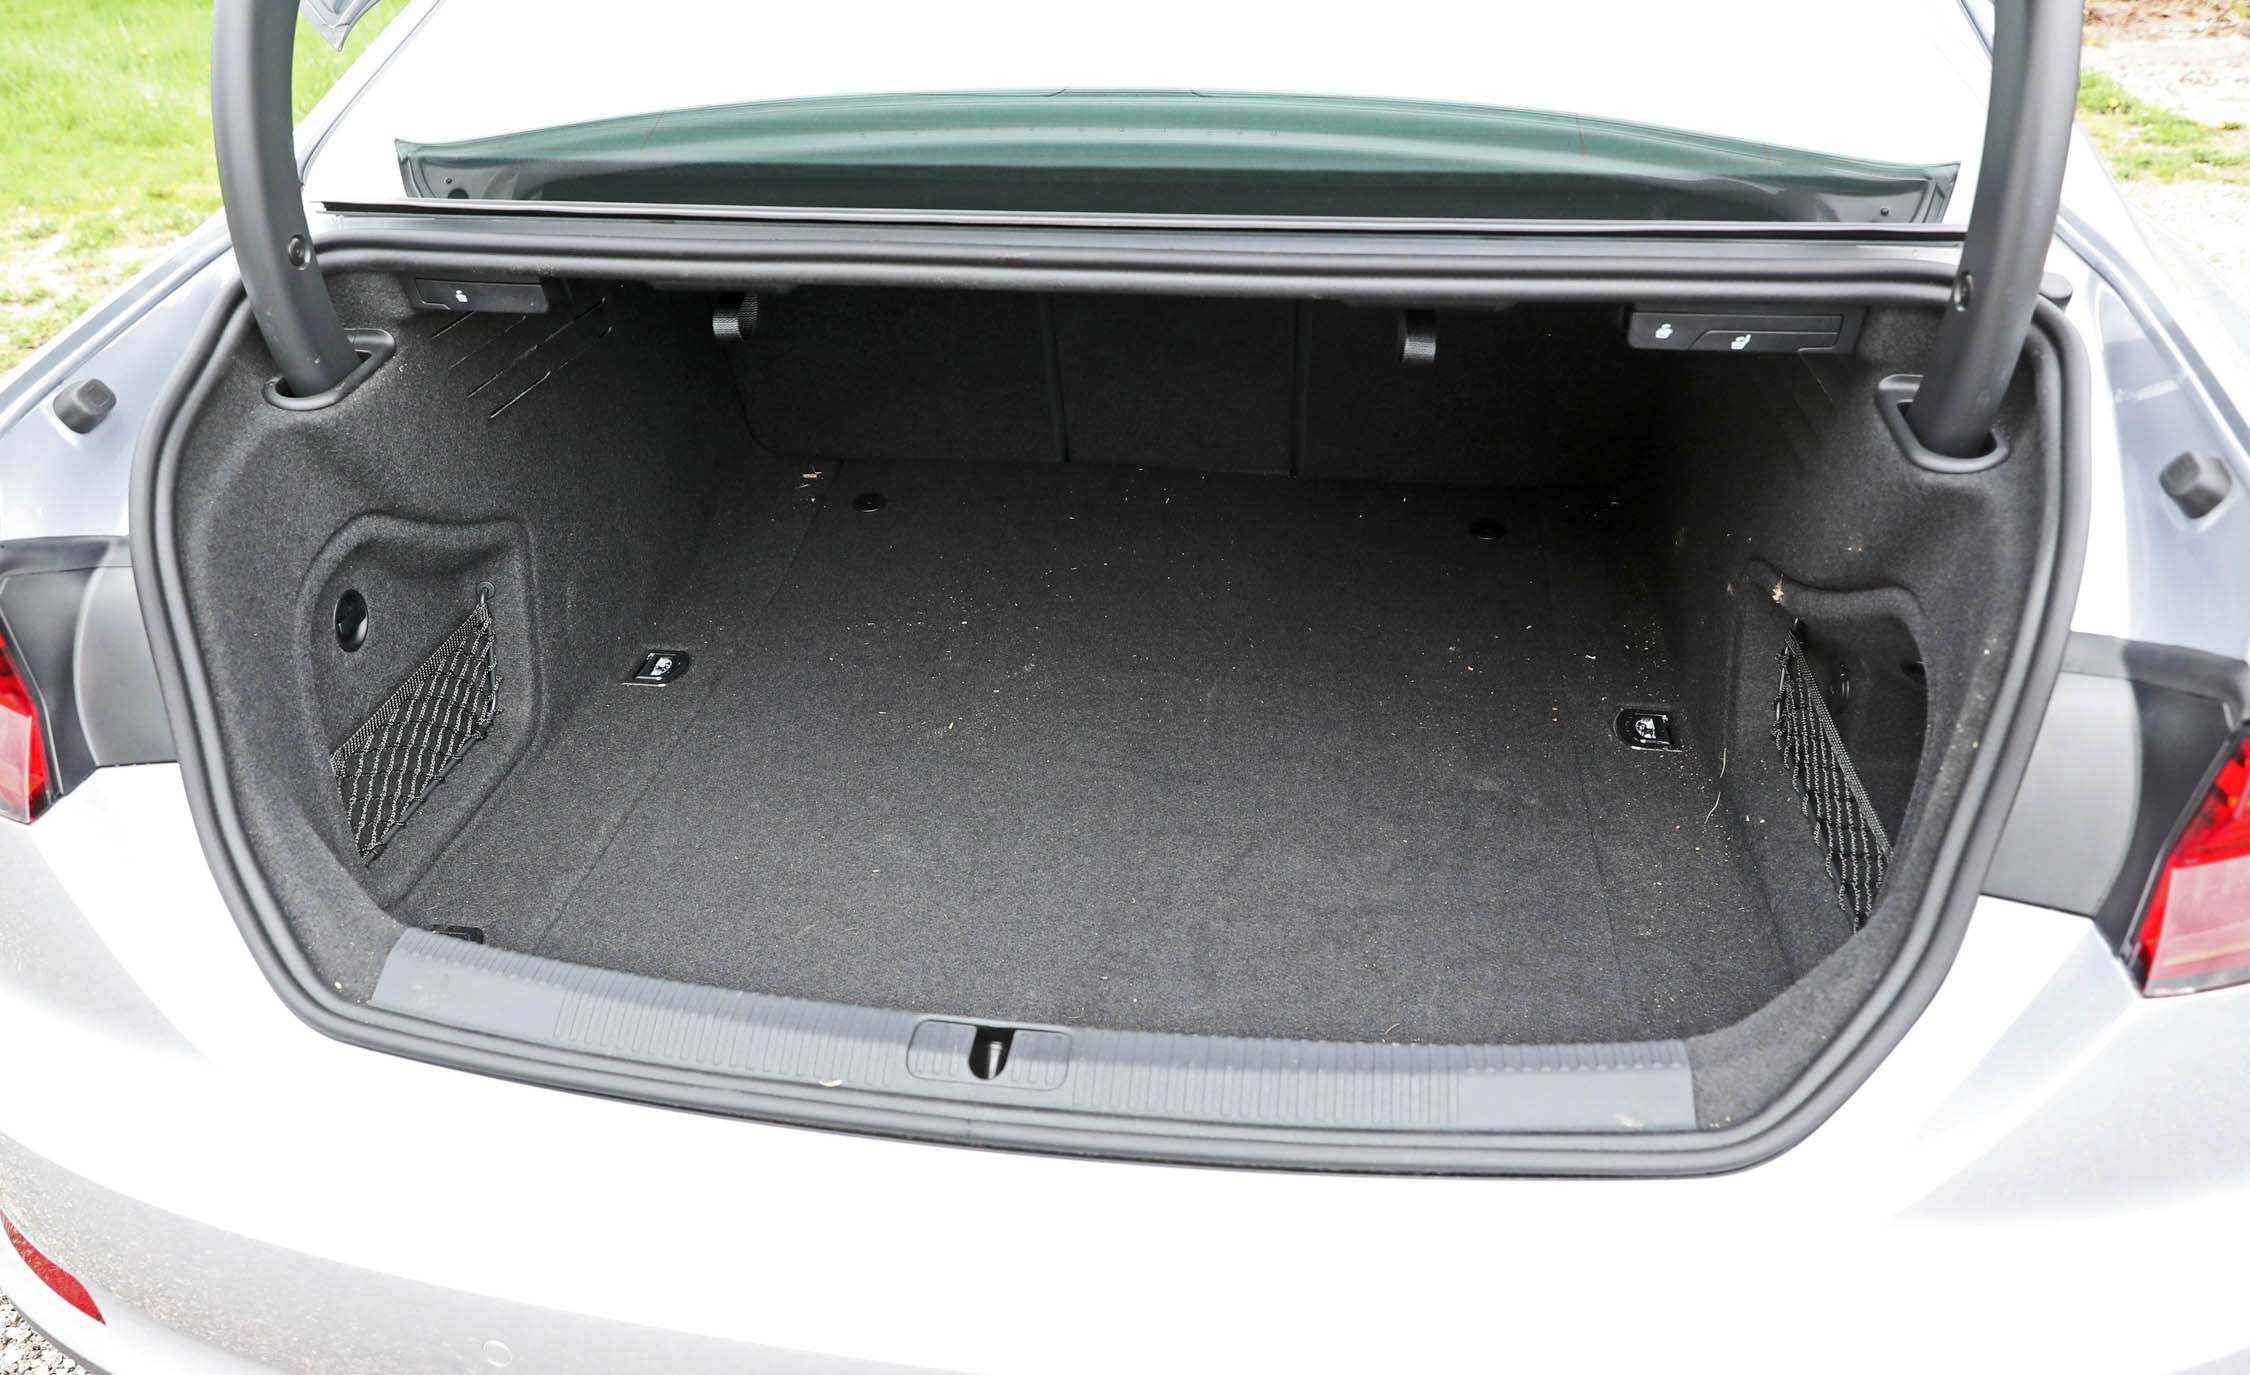 2018 Audi A5 Coupe Interior View Cargo Trunk (Photo 24 of 50)